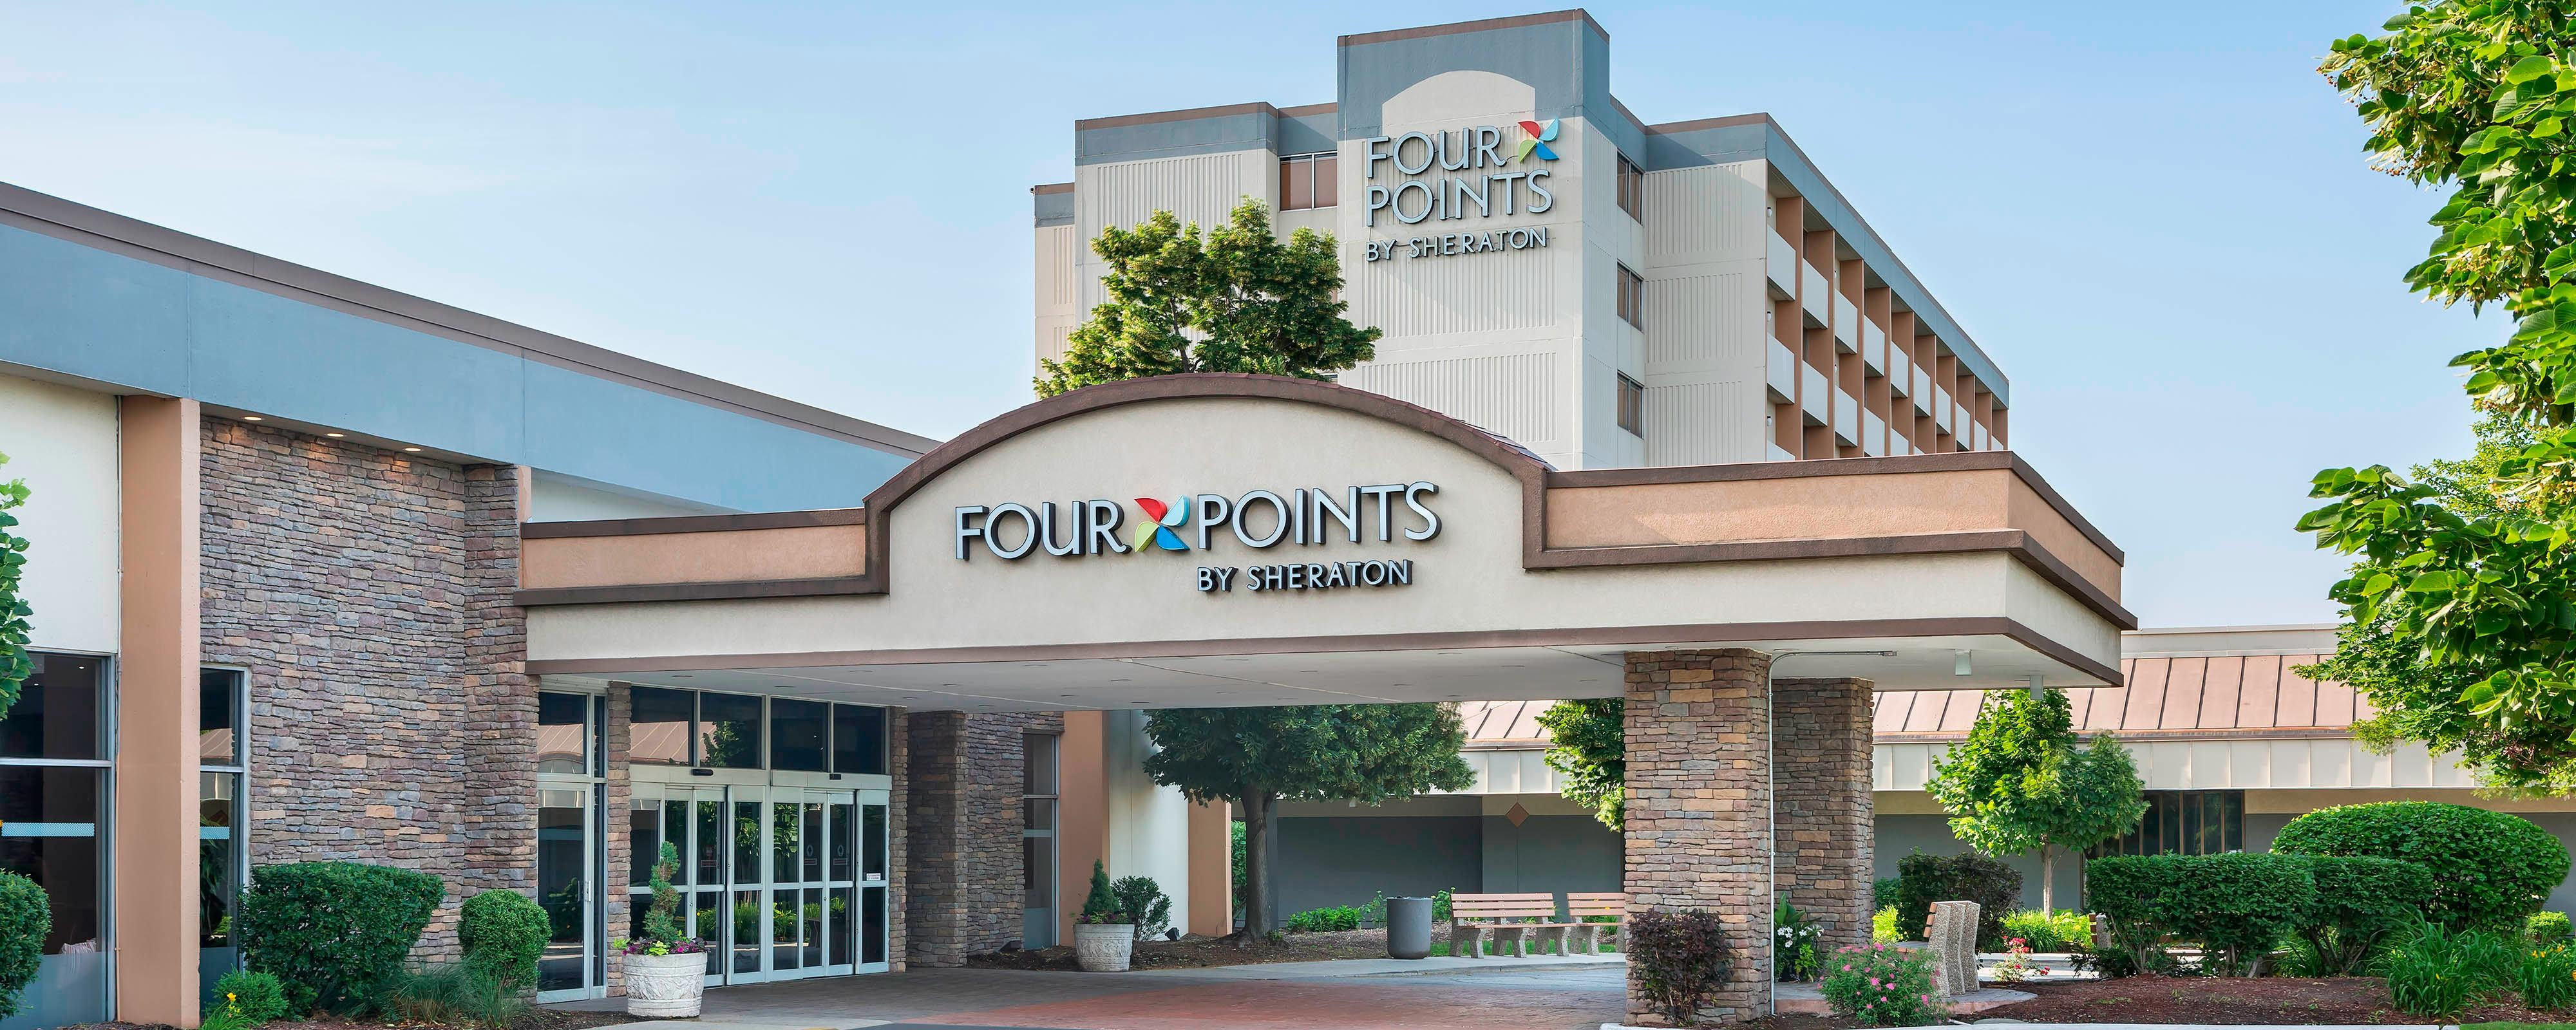 Chicago Airport Hotels >> Rosemont Hotels Near O Hare Airport Four Points By Sheraton